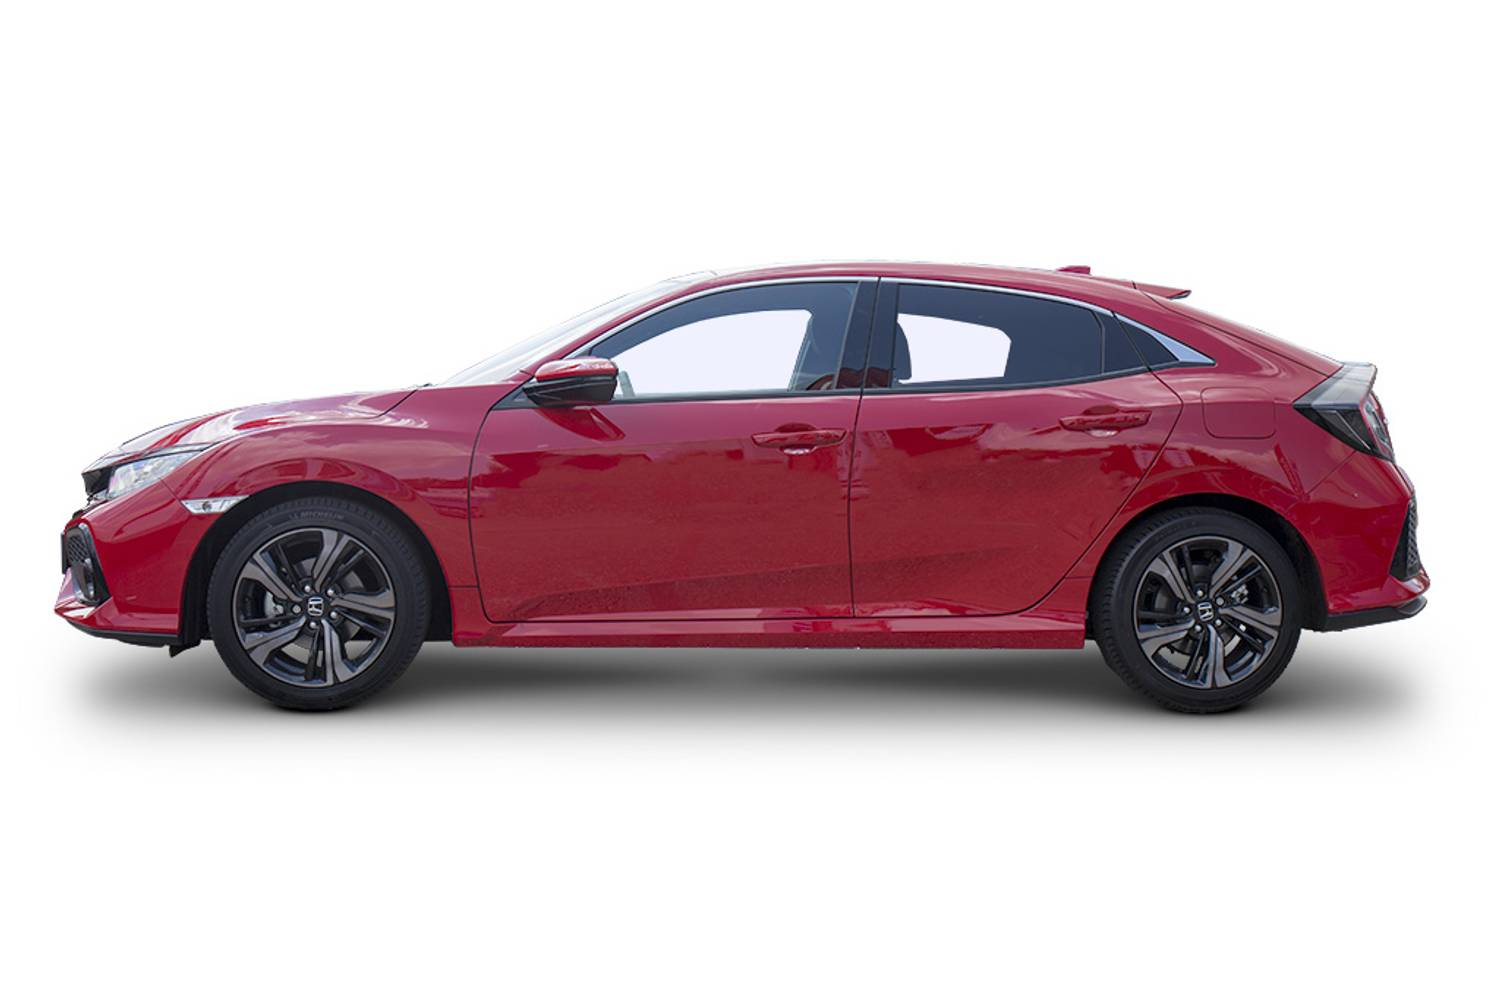 new honda civic hatchback 1 5 vtec turbo sport plus 5 door 2017 for sale. Black Bedroom Furniture Sets. Home Design Ideas